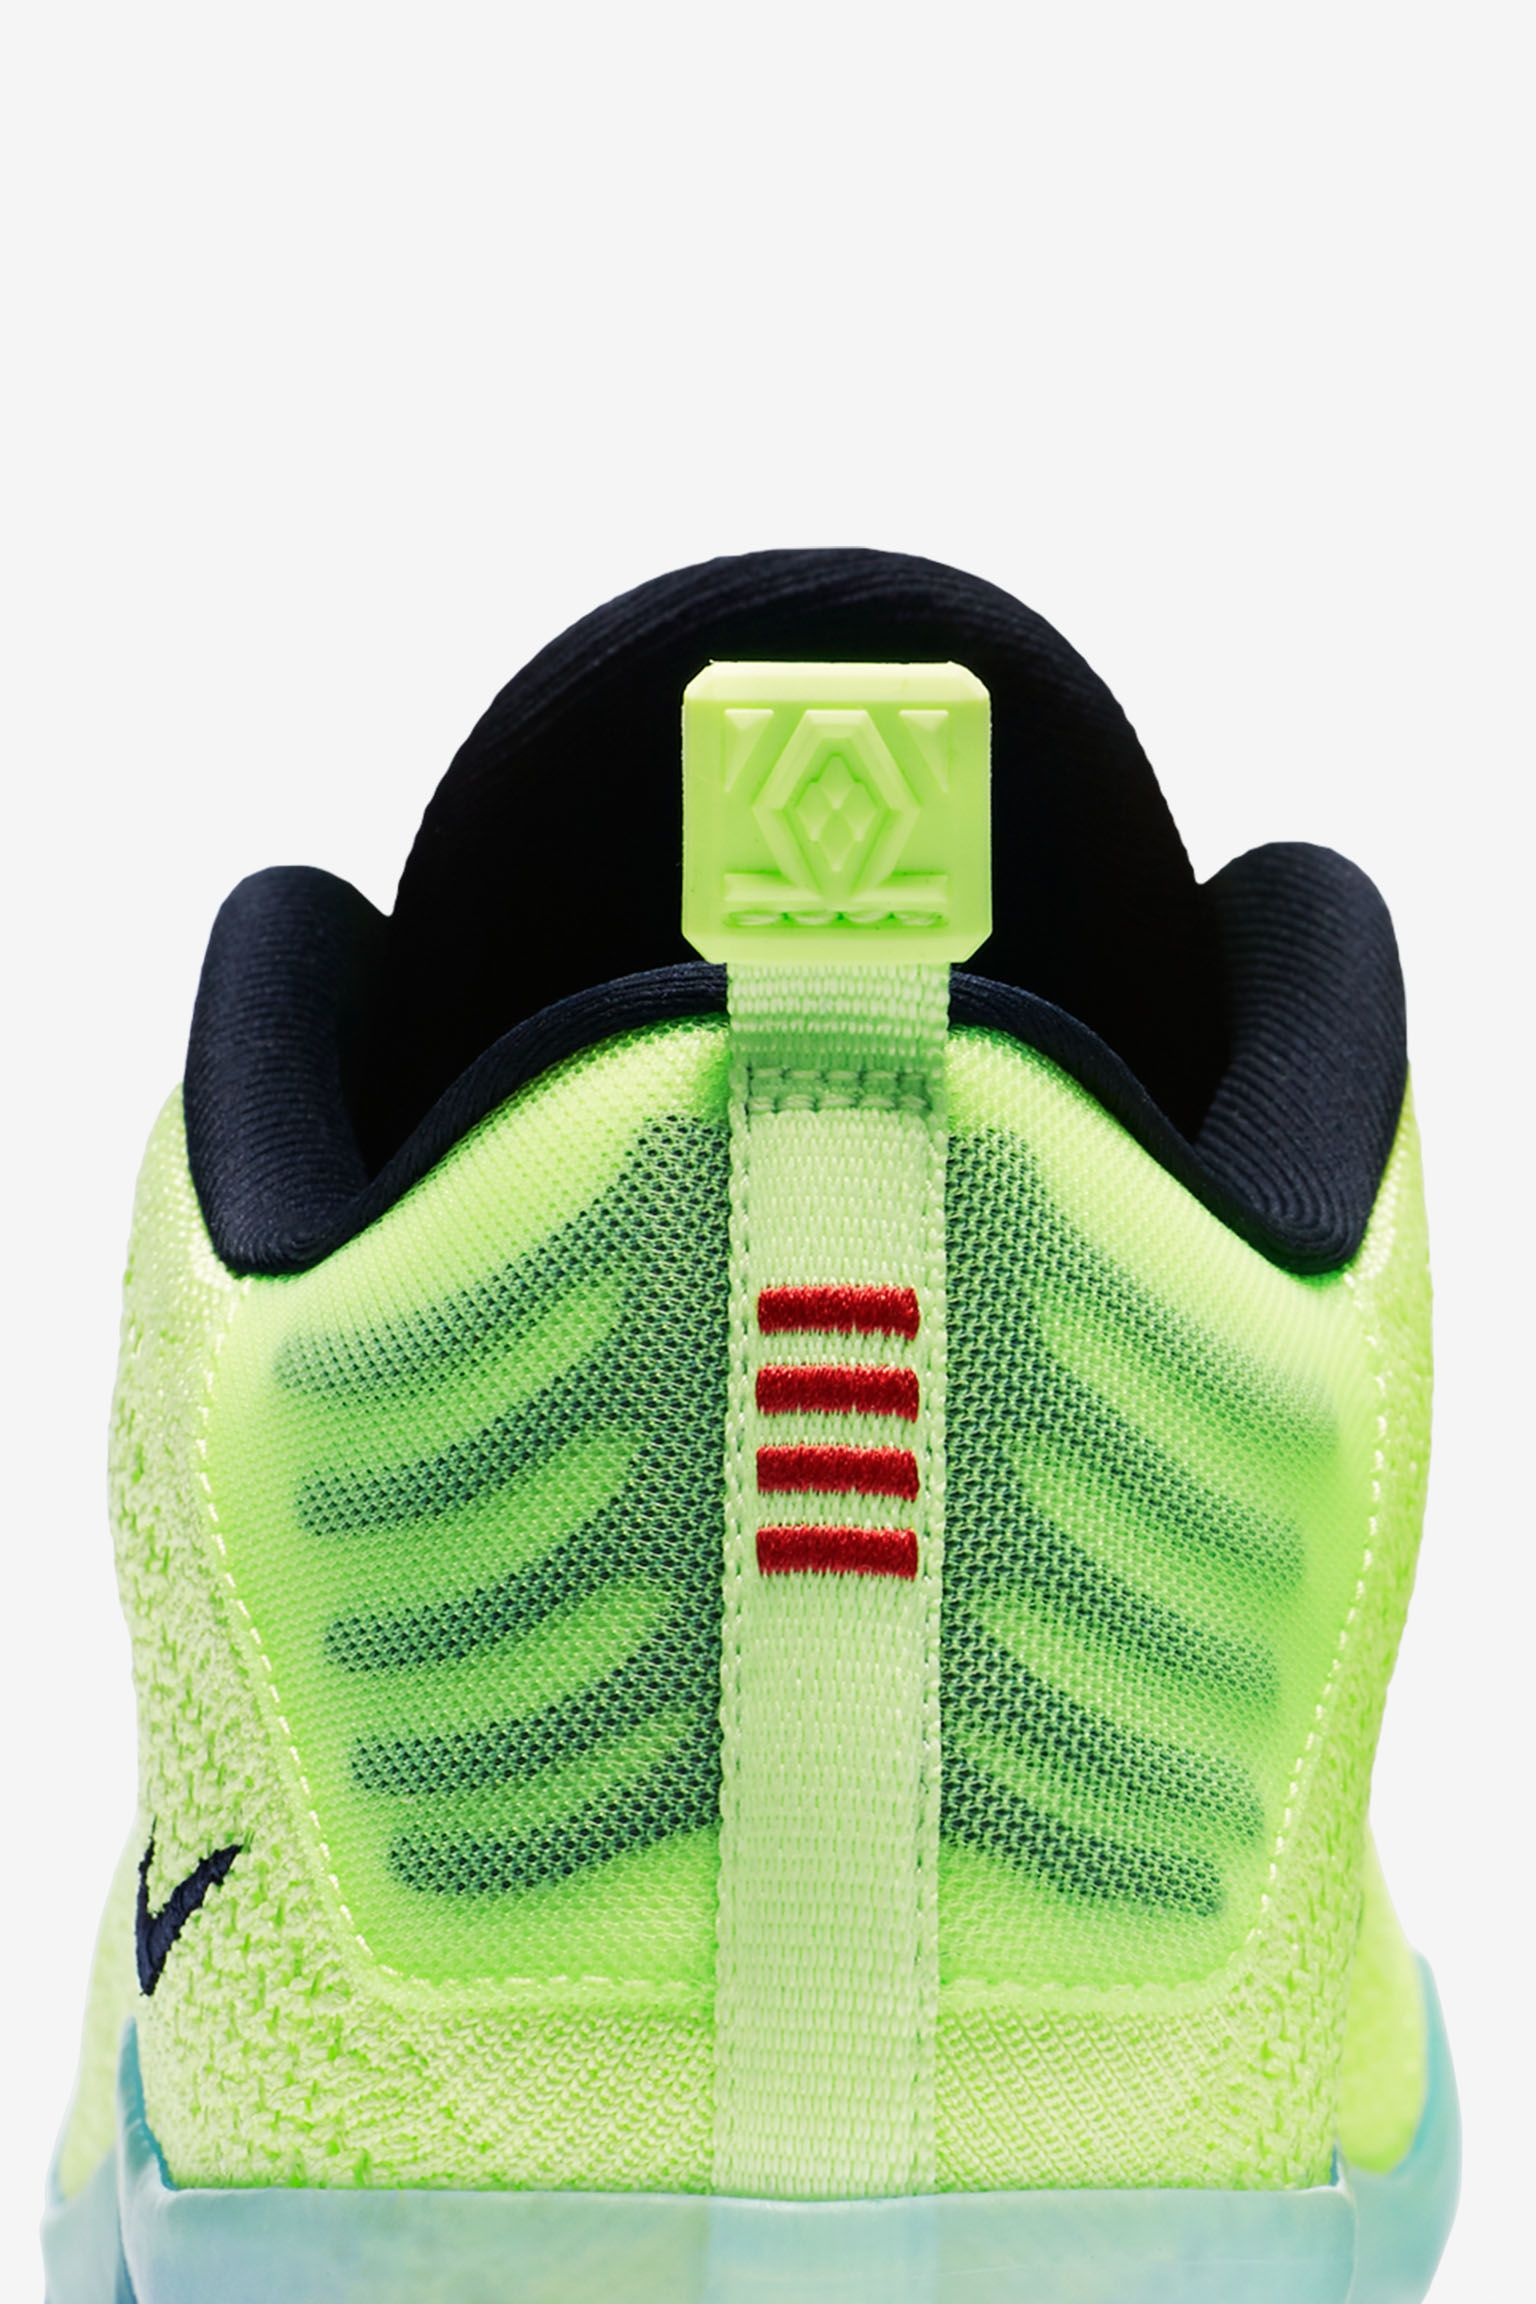 Nike Kobe 11 Elite Low 4KB 'Liquid Lime'